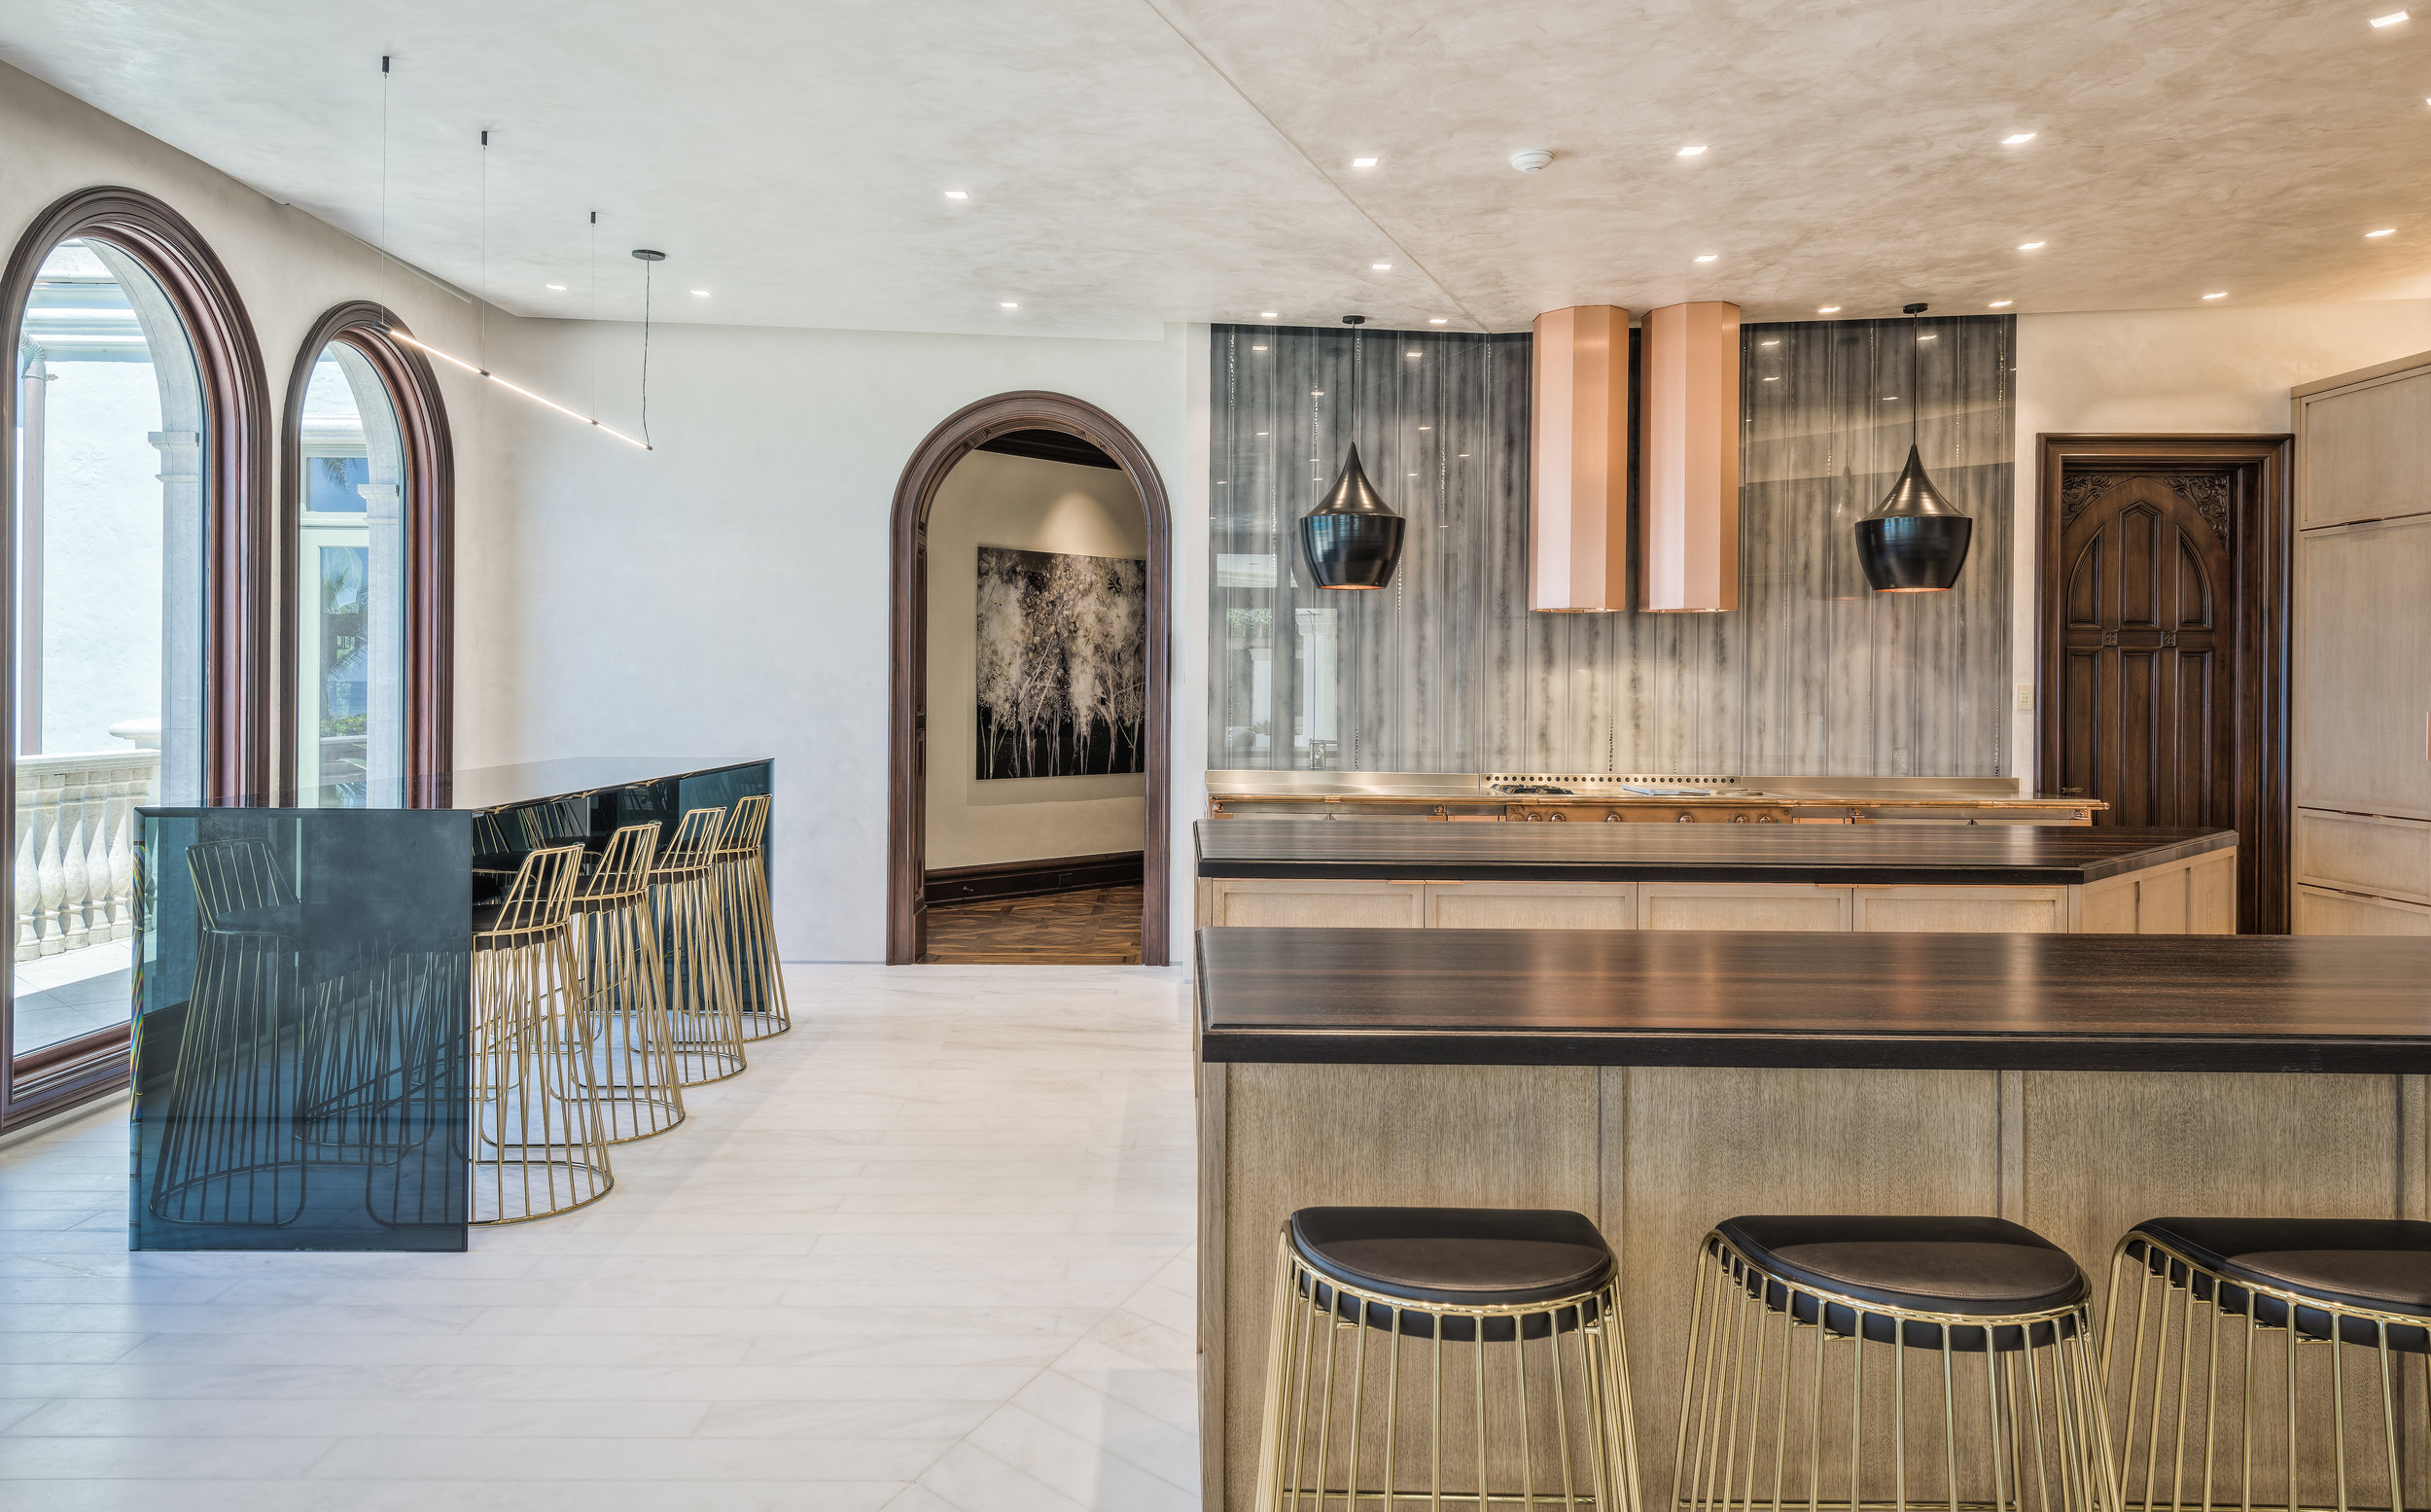 Private Beachfront Estate Bespoke kitchen Custom architectural and decorative details throughout